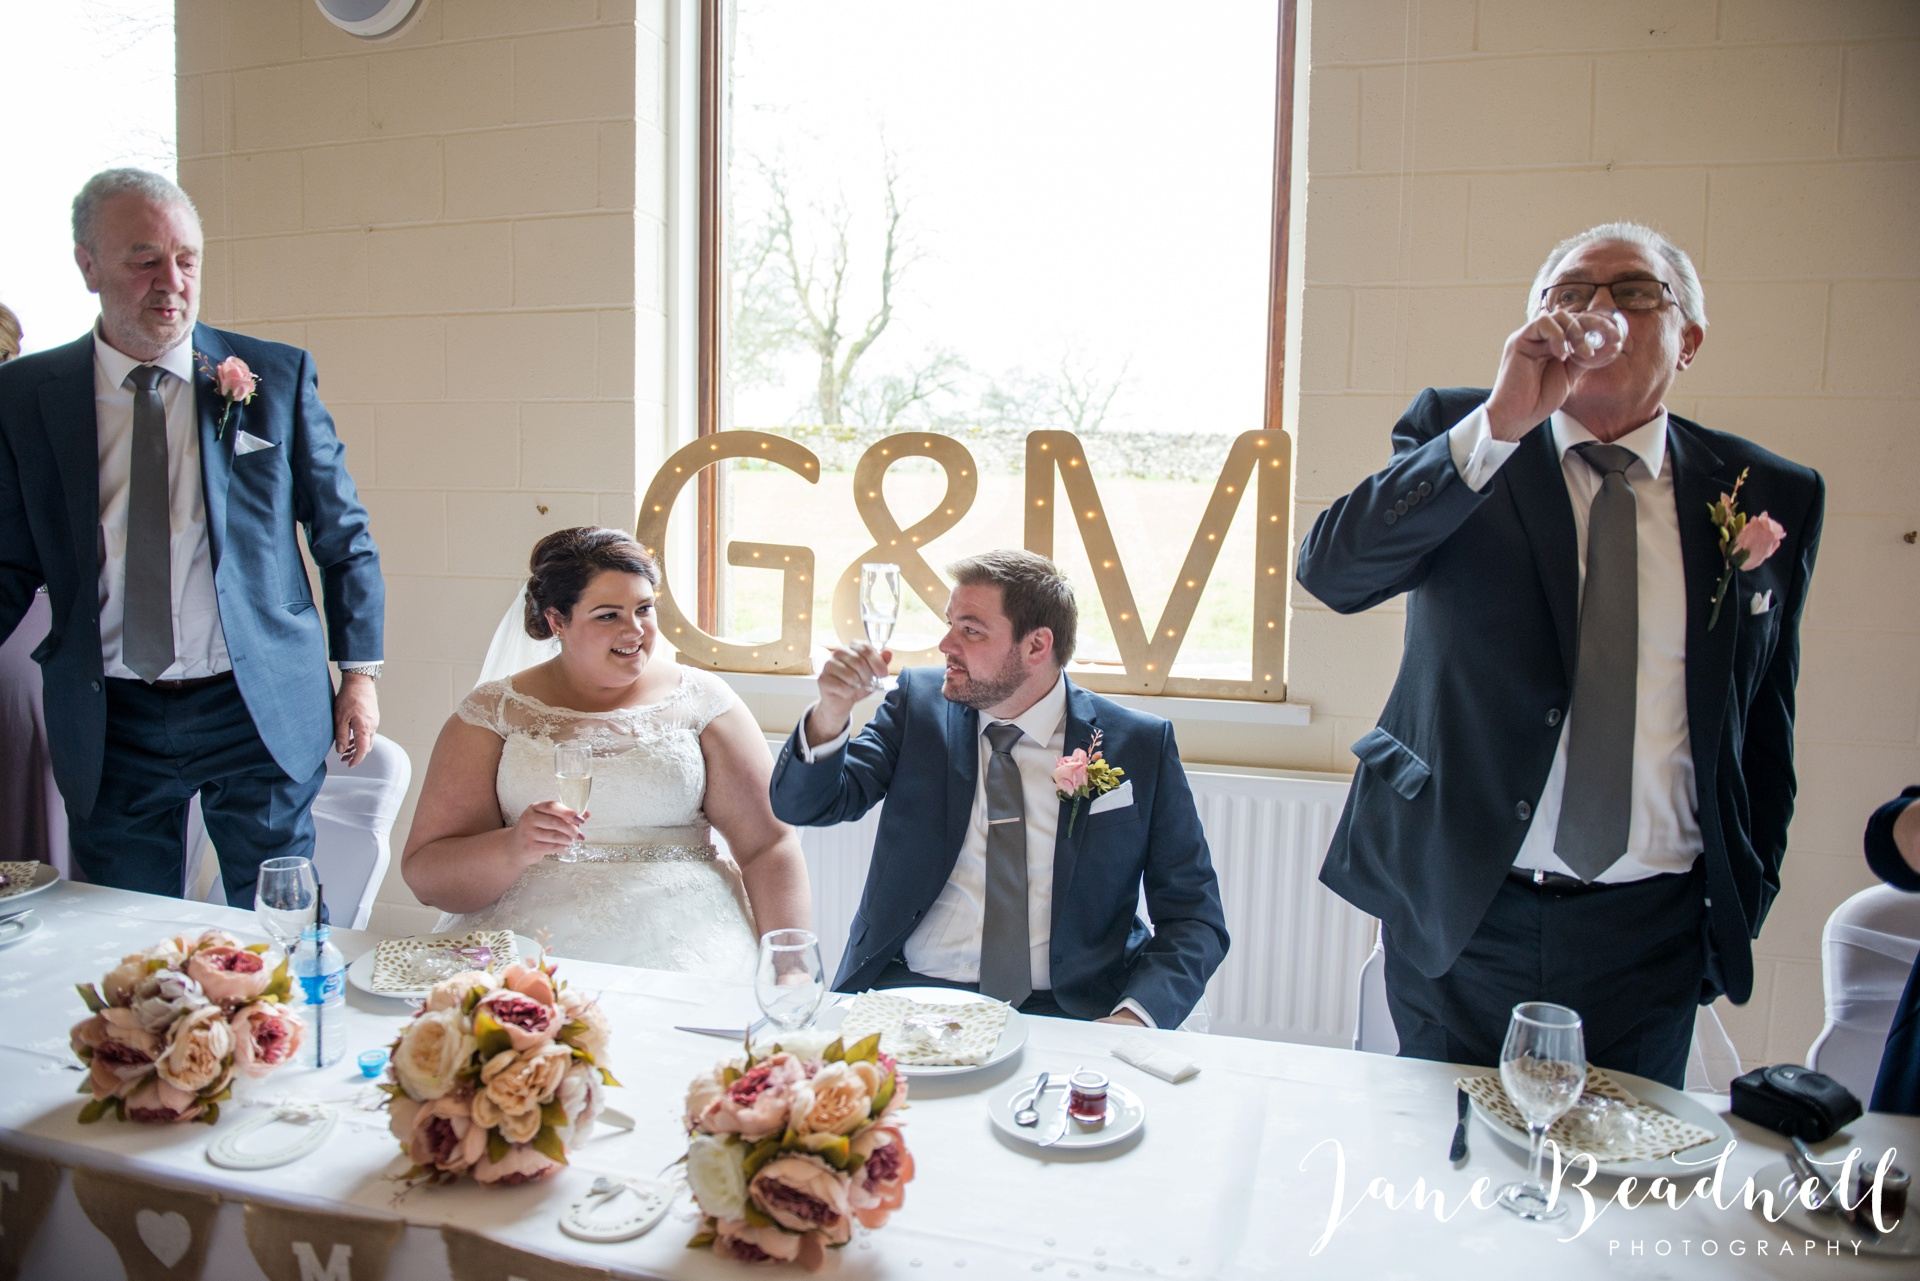 Cracoe Village Hall Wedding Photography by Jane Beadnell Photography fine art wedding photographer Yorkshire_0075